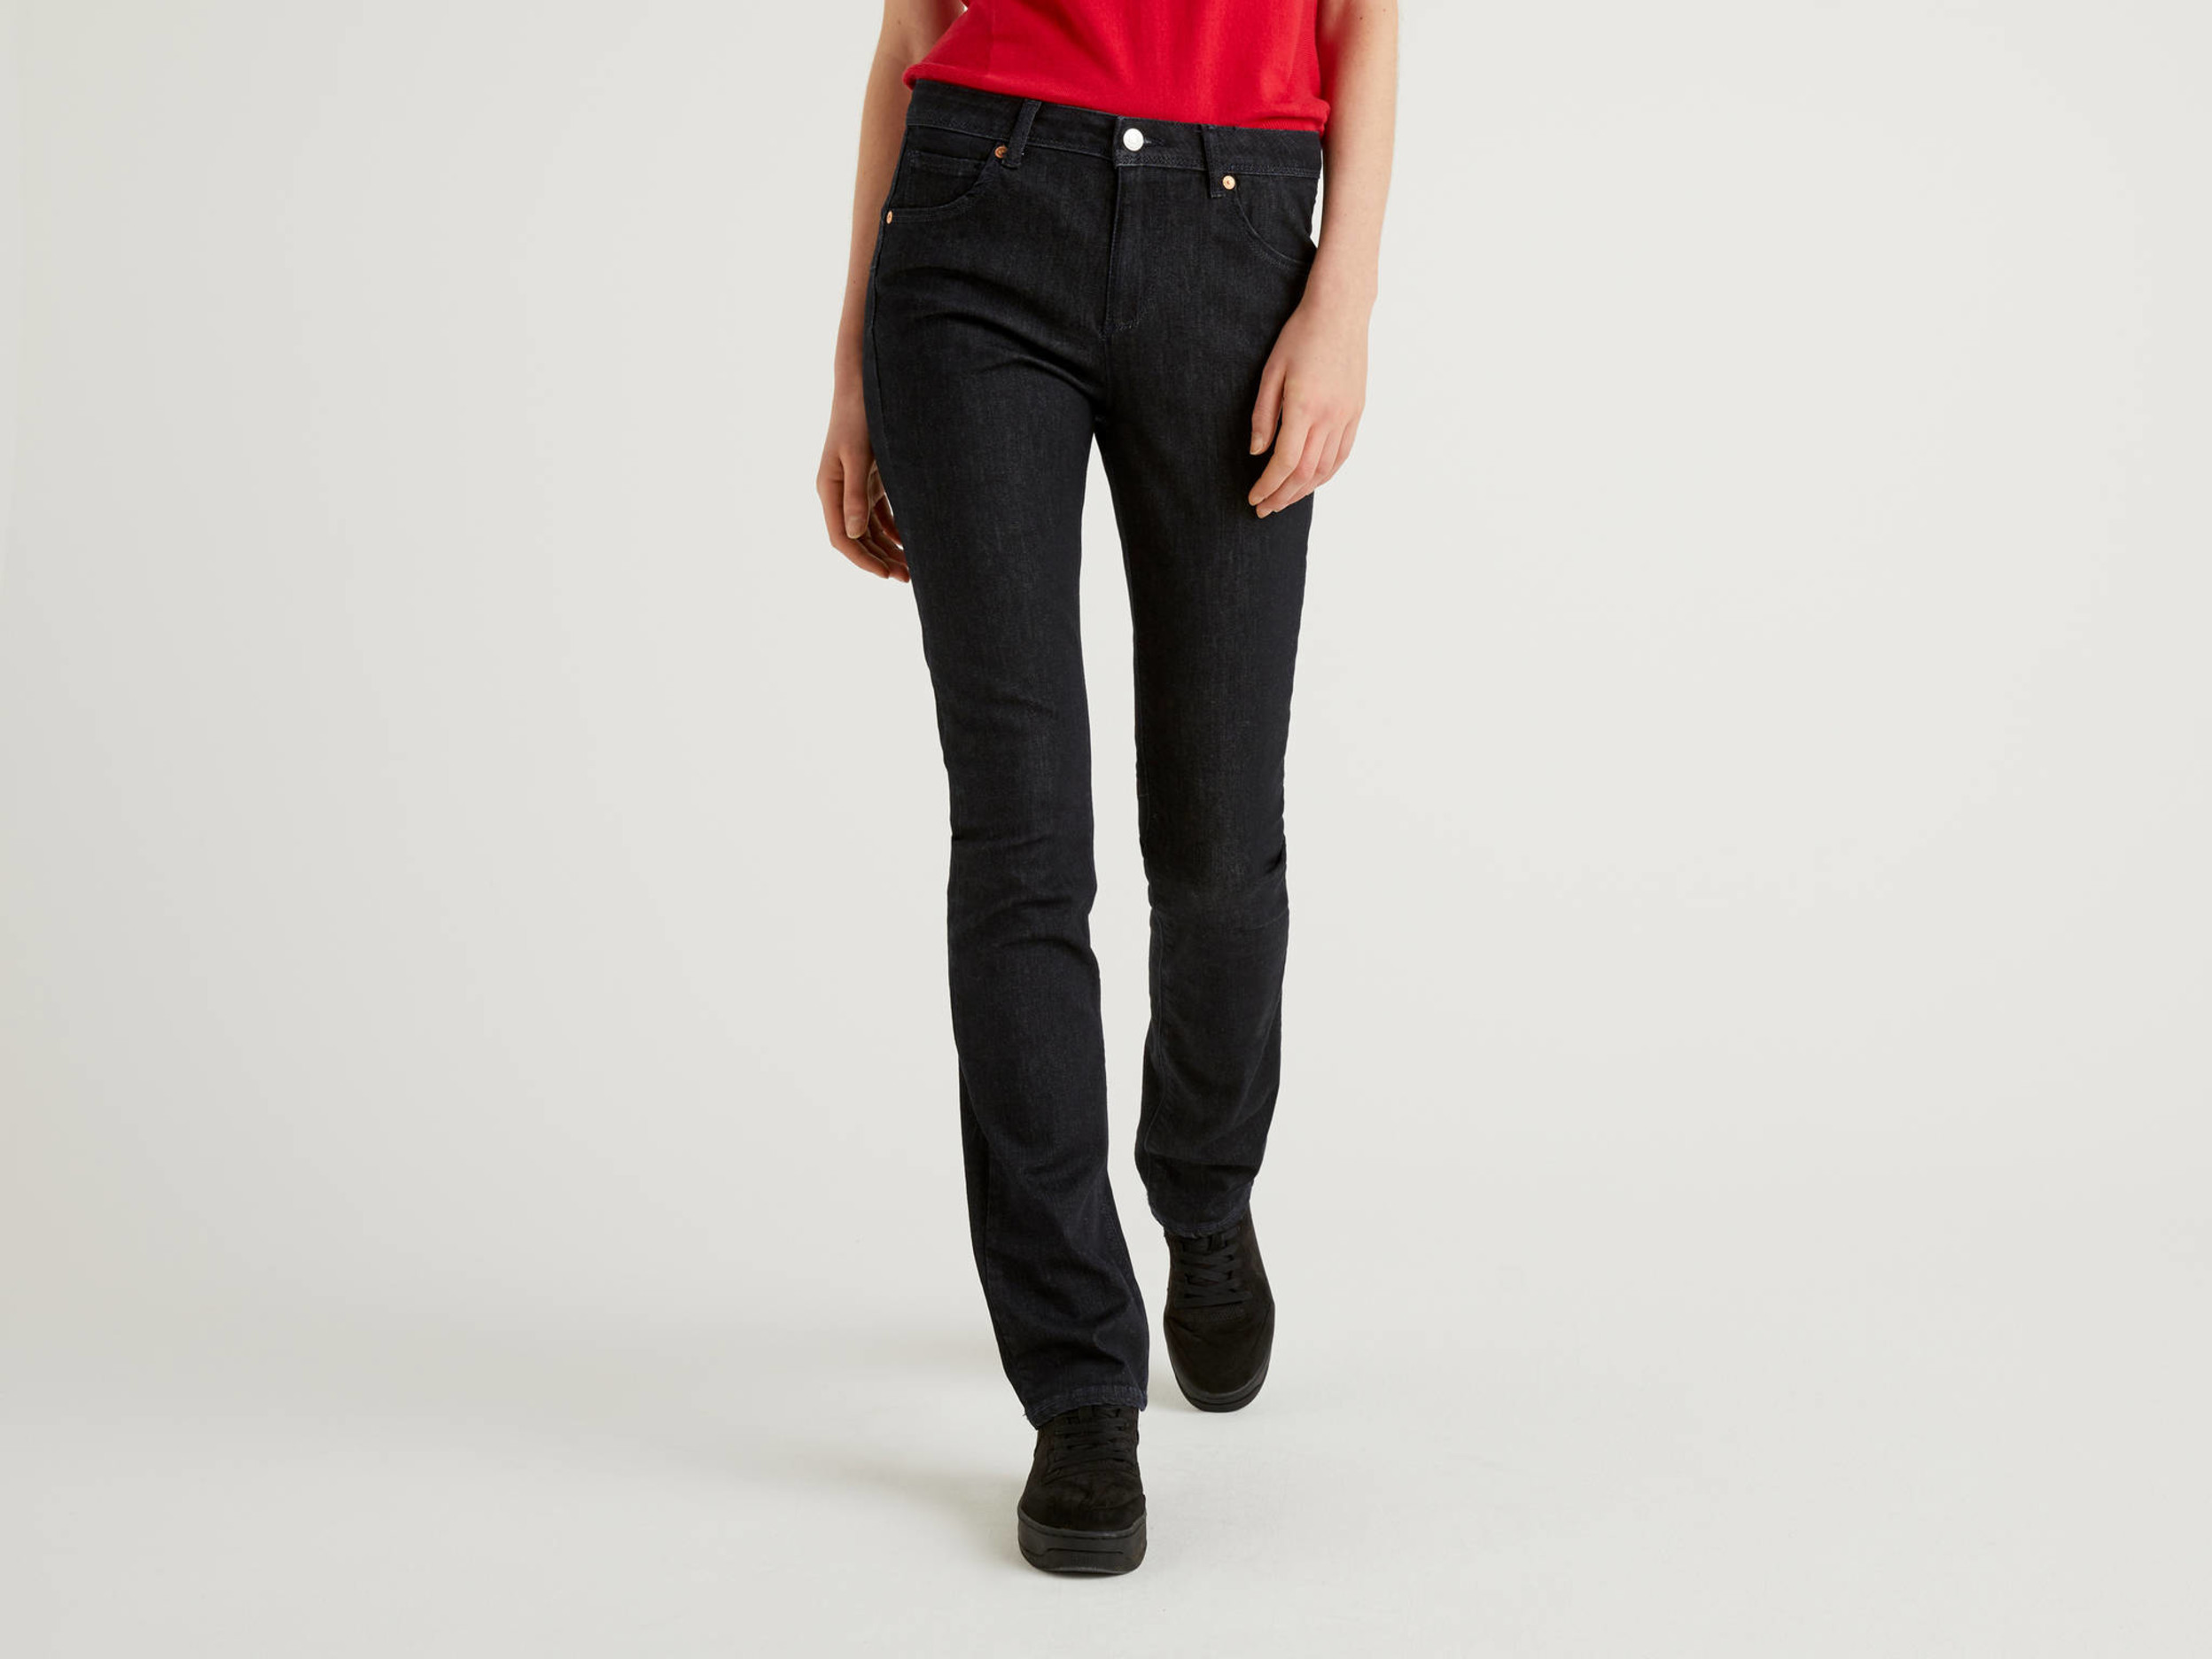 Benetton Online exclusive, Jeans Bootcut Push Up, Blu Scuro, Donna